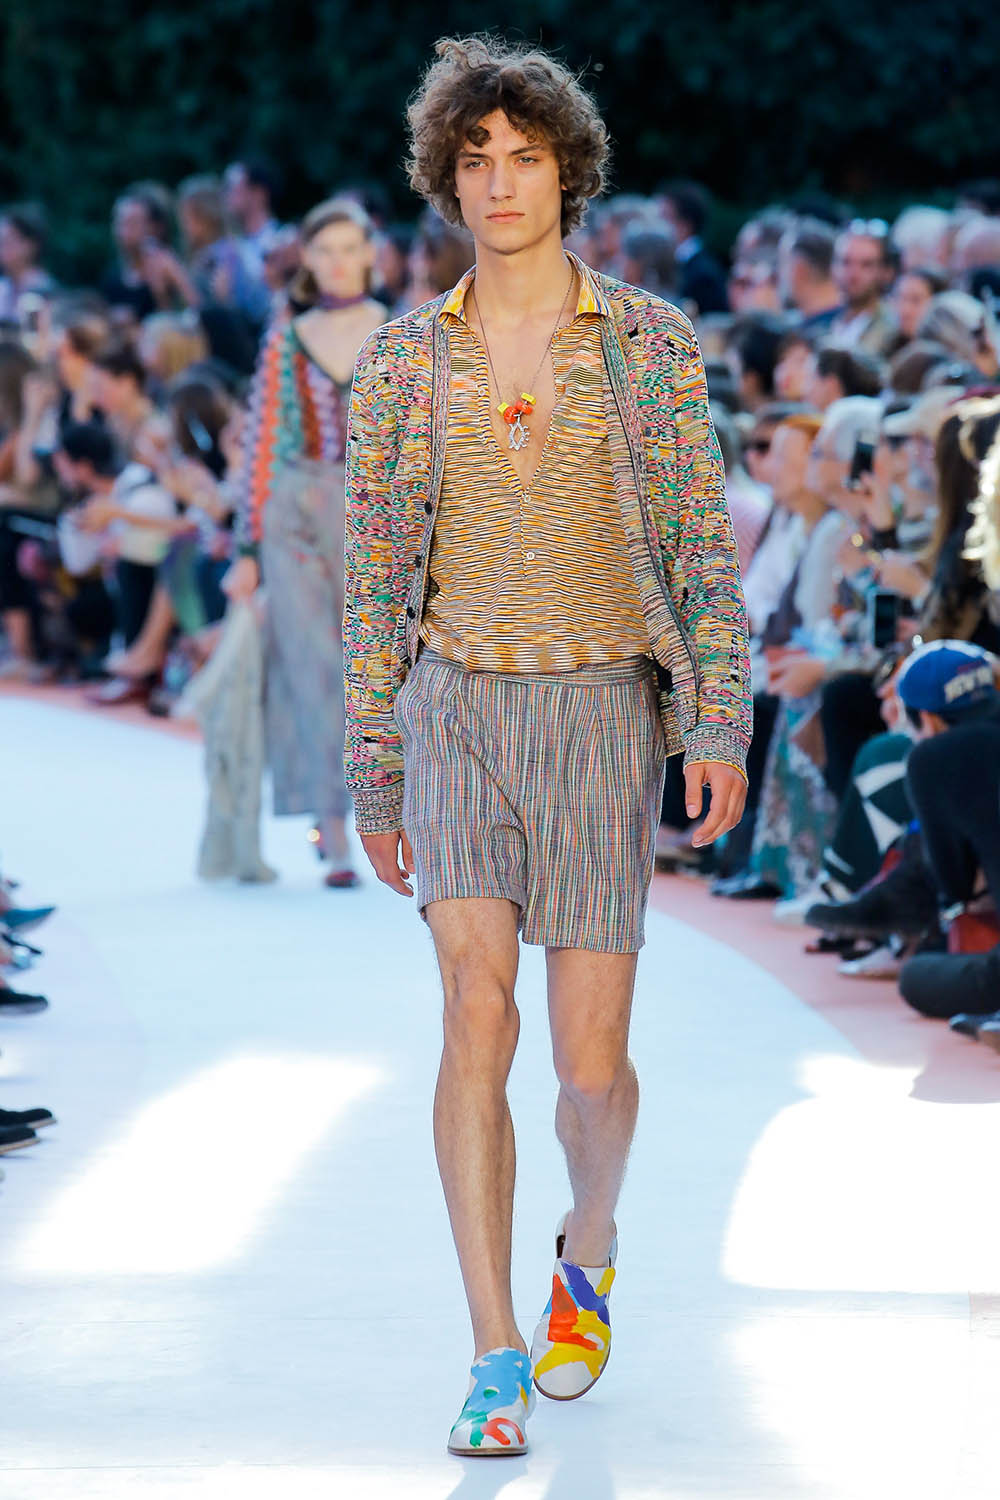 Model walking the catwalk at Missoni (by Angela Missoni) SS18 me